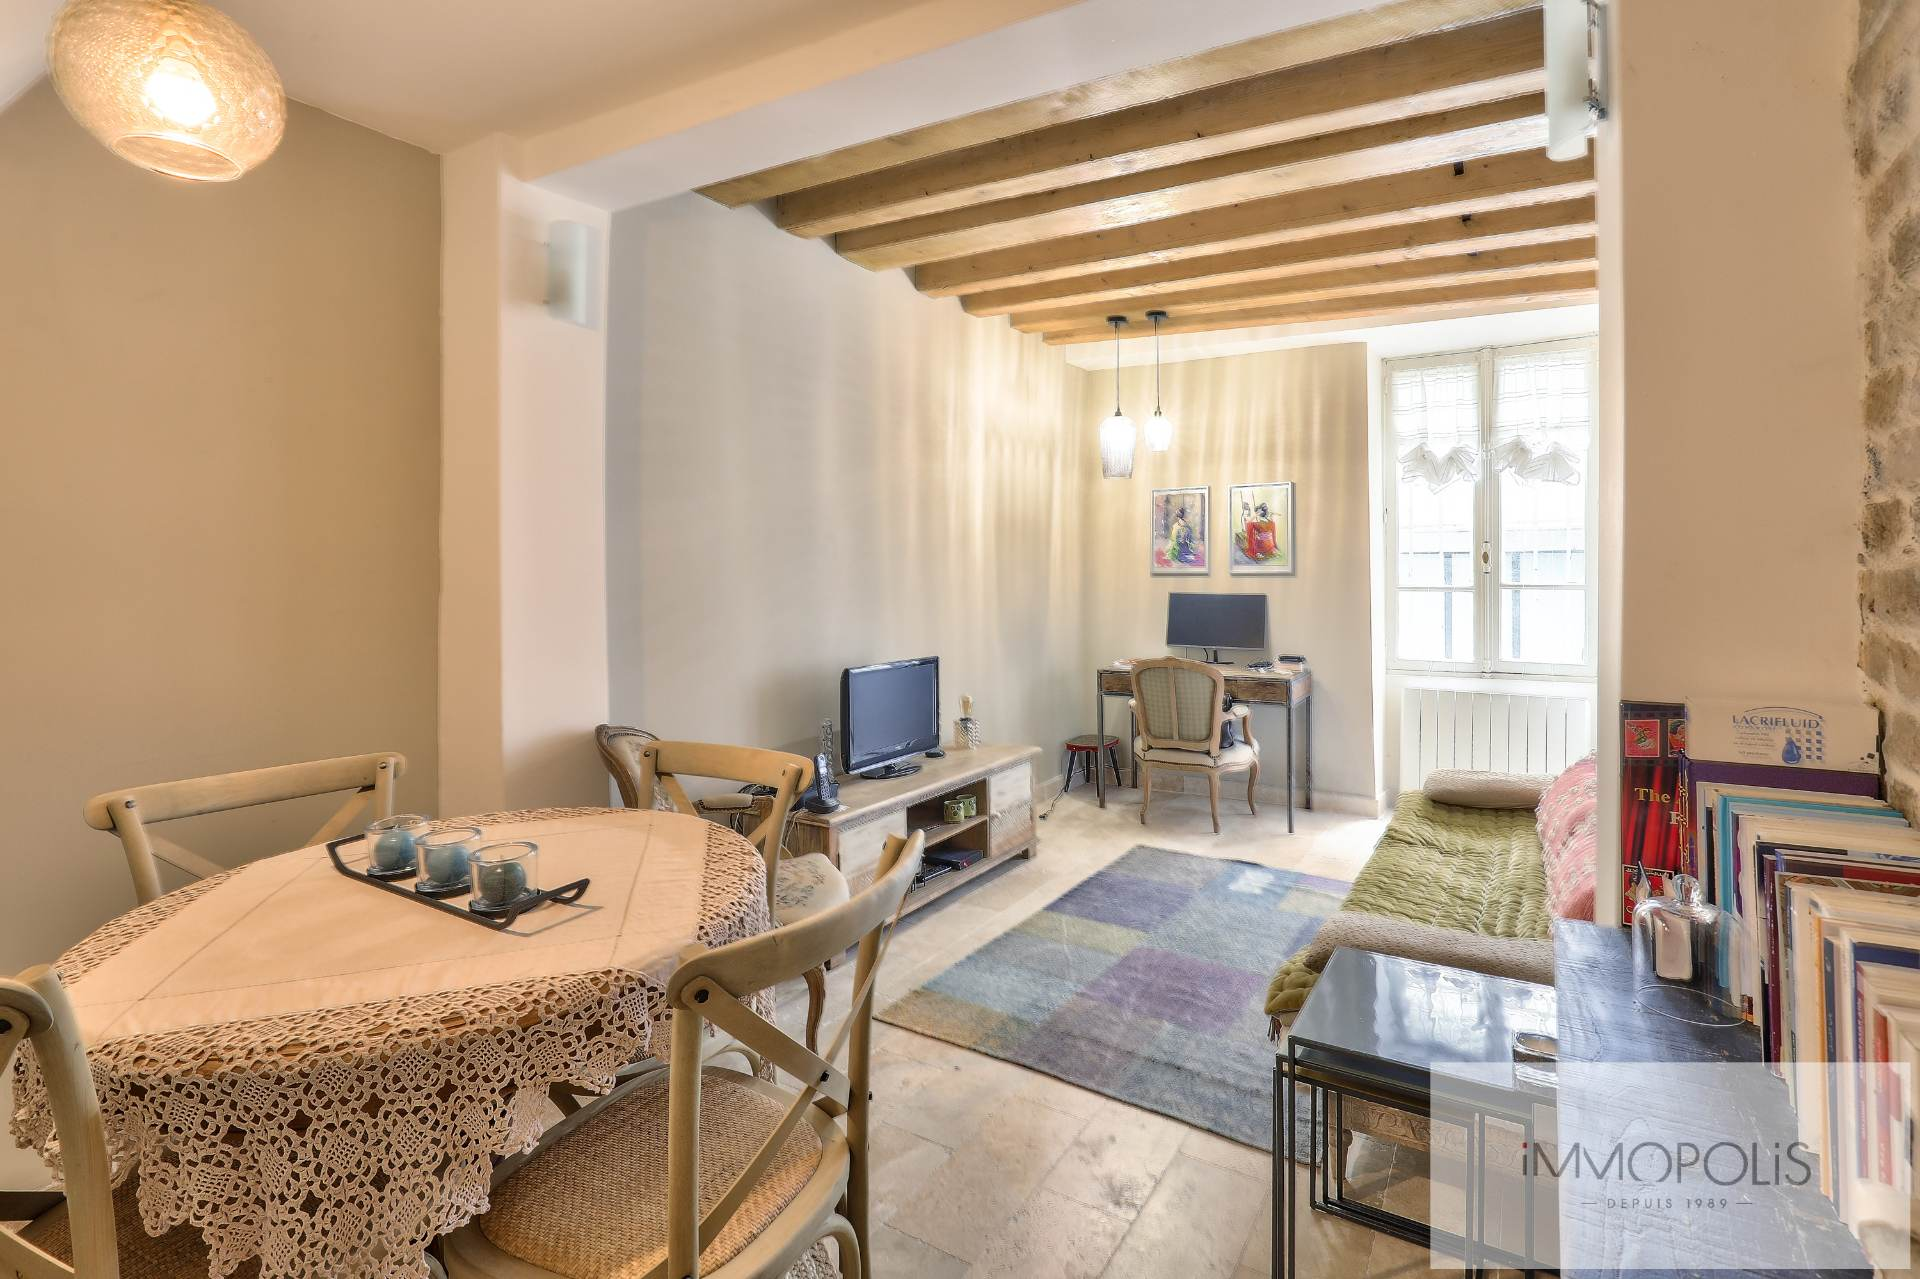 Montmartre, rue Gabrielle, beautiful 2 rooms completely renovated with stones, bricks and exposed beams: like a house! 2